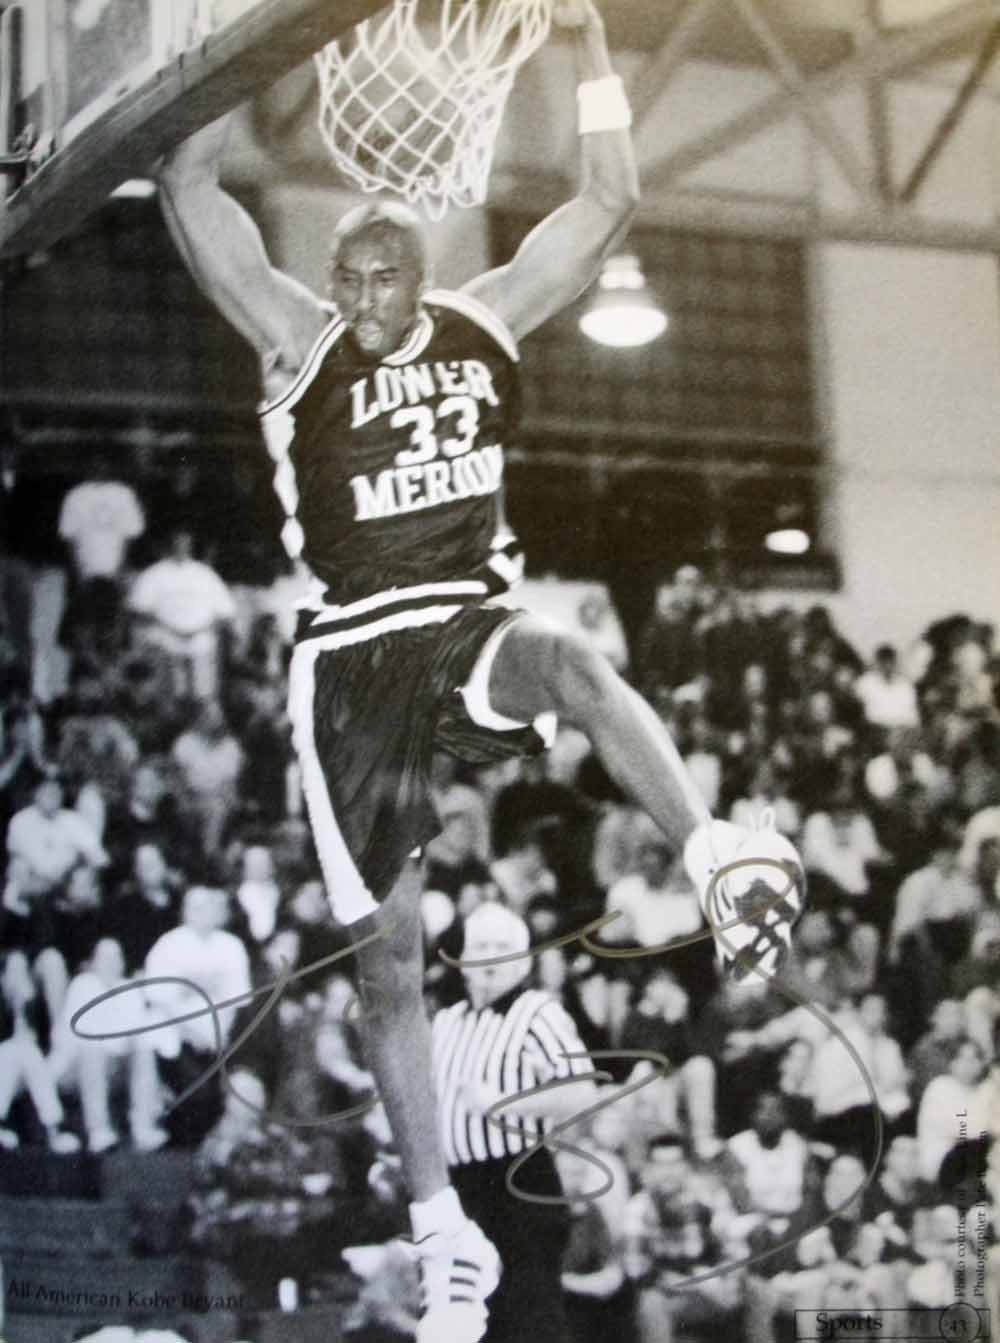 8a039d3af Kobe Bryant Signed 1996 Lower Merion High School Yearbook (JSA) ...